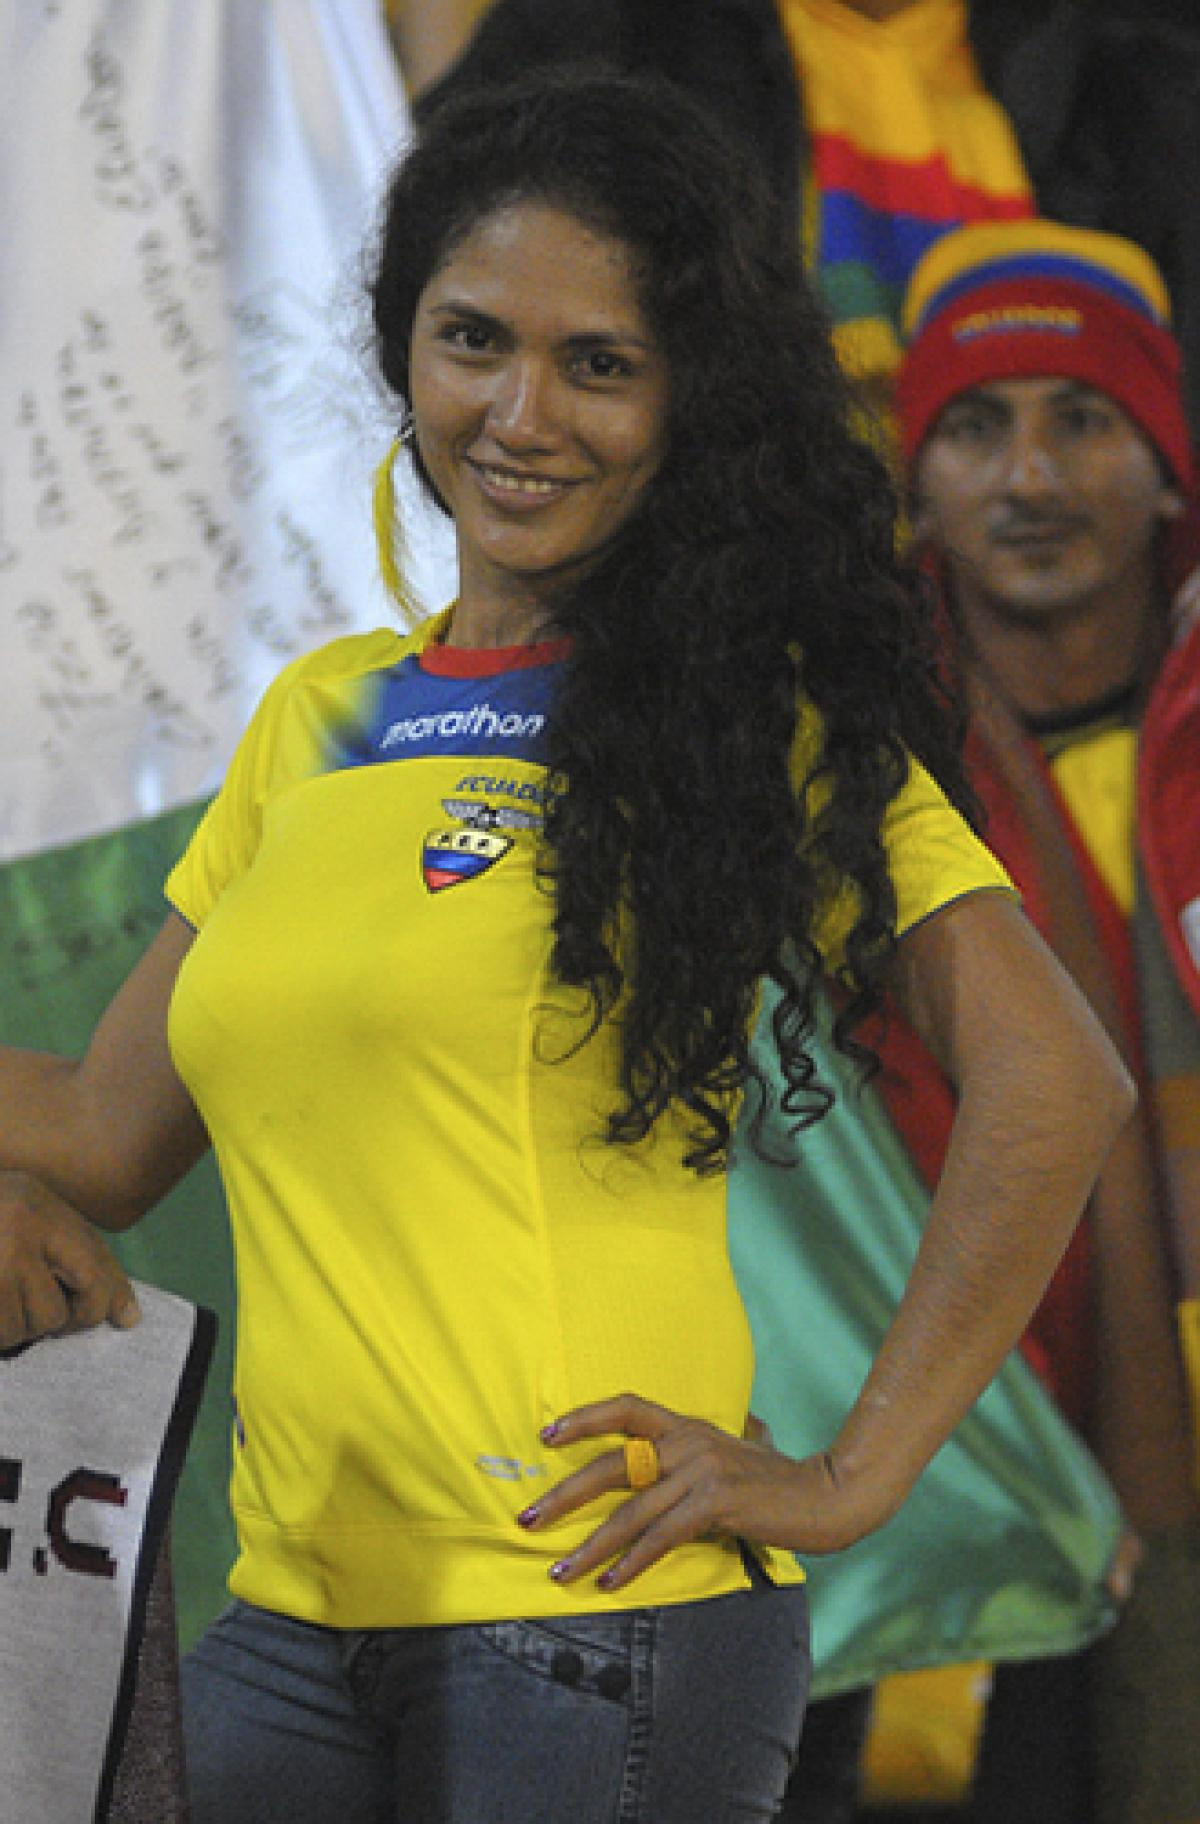 17 ecuador 3 - hottest fans 2014 fifa world cup